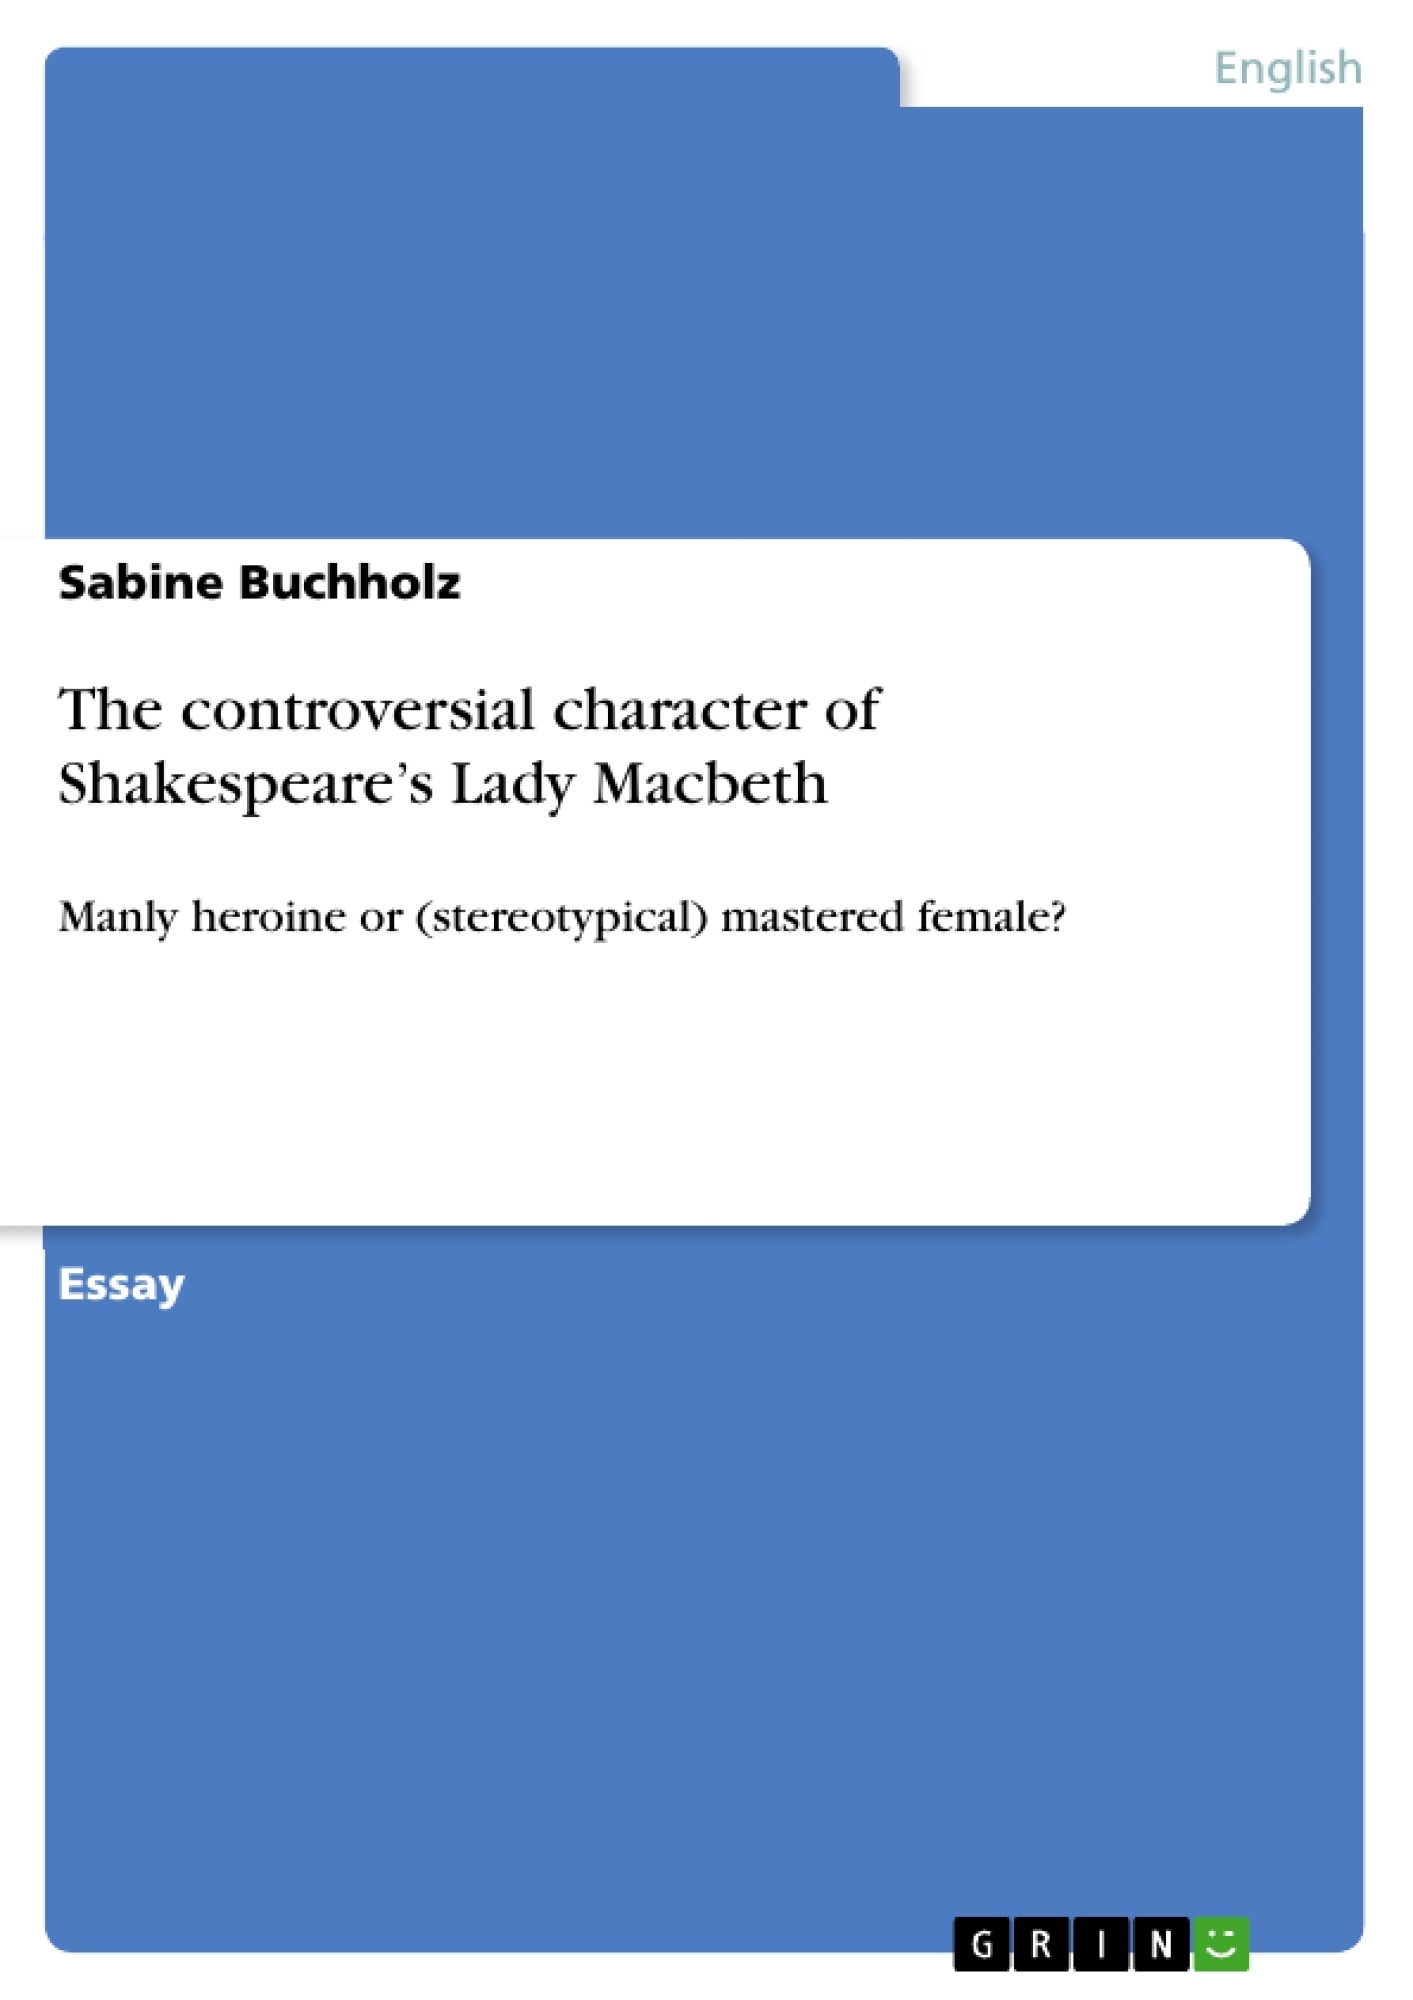 Title: The controversial character of Shakespeare's Lady Macbeth